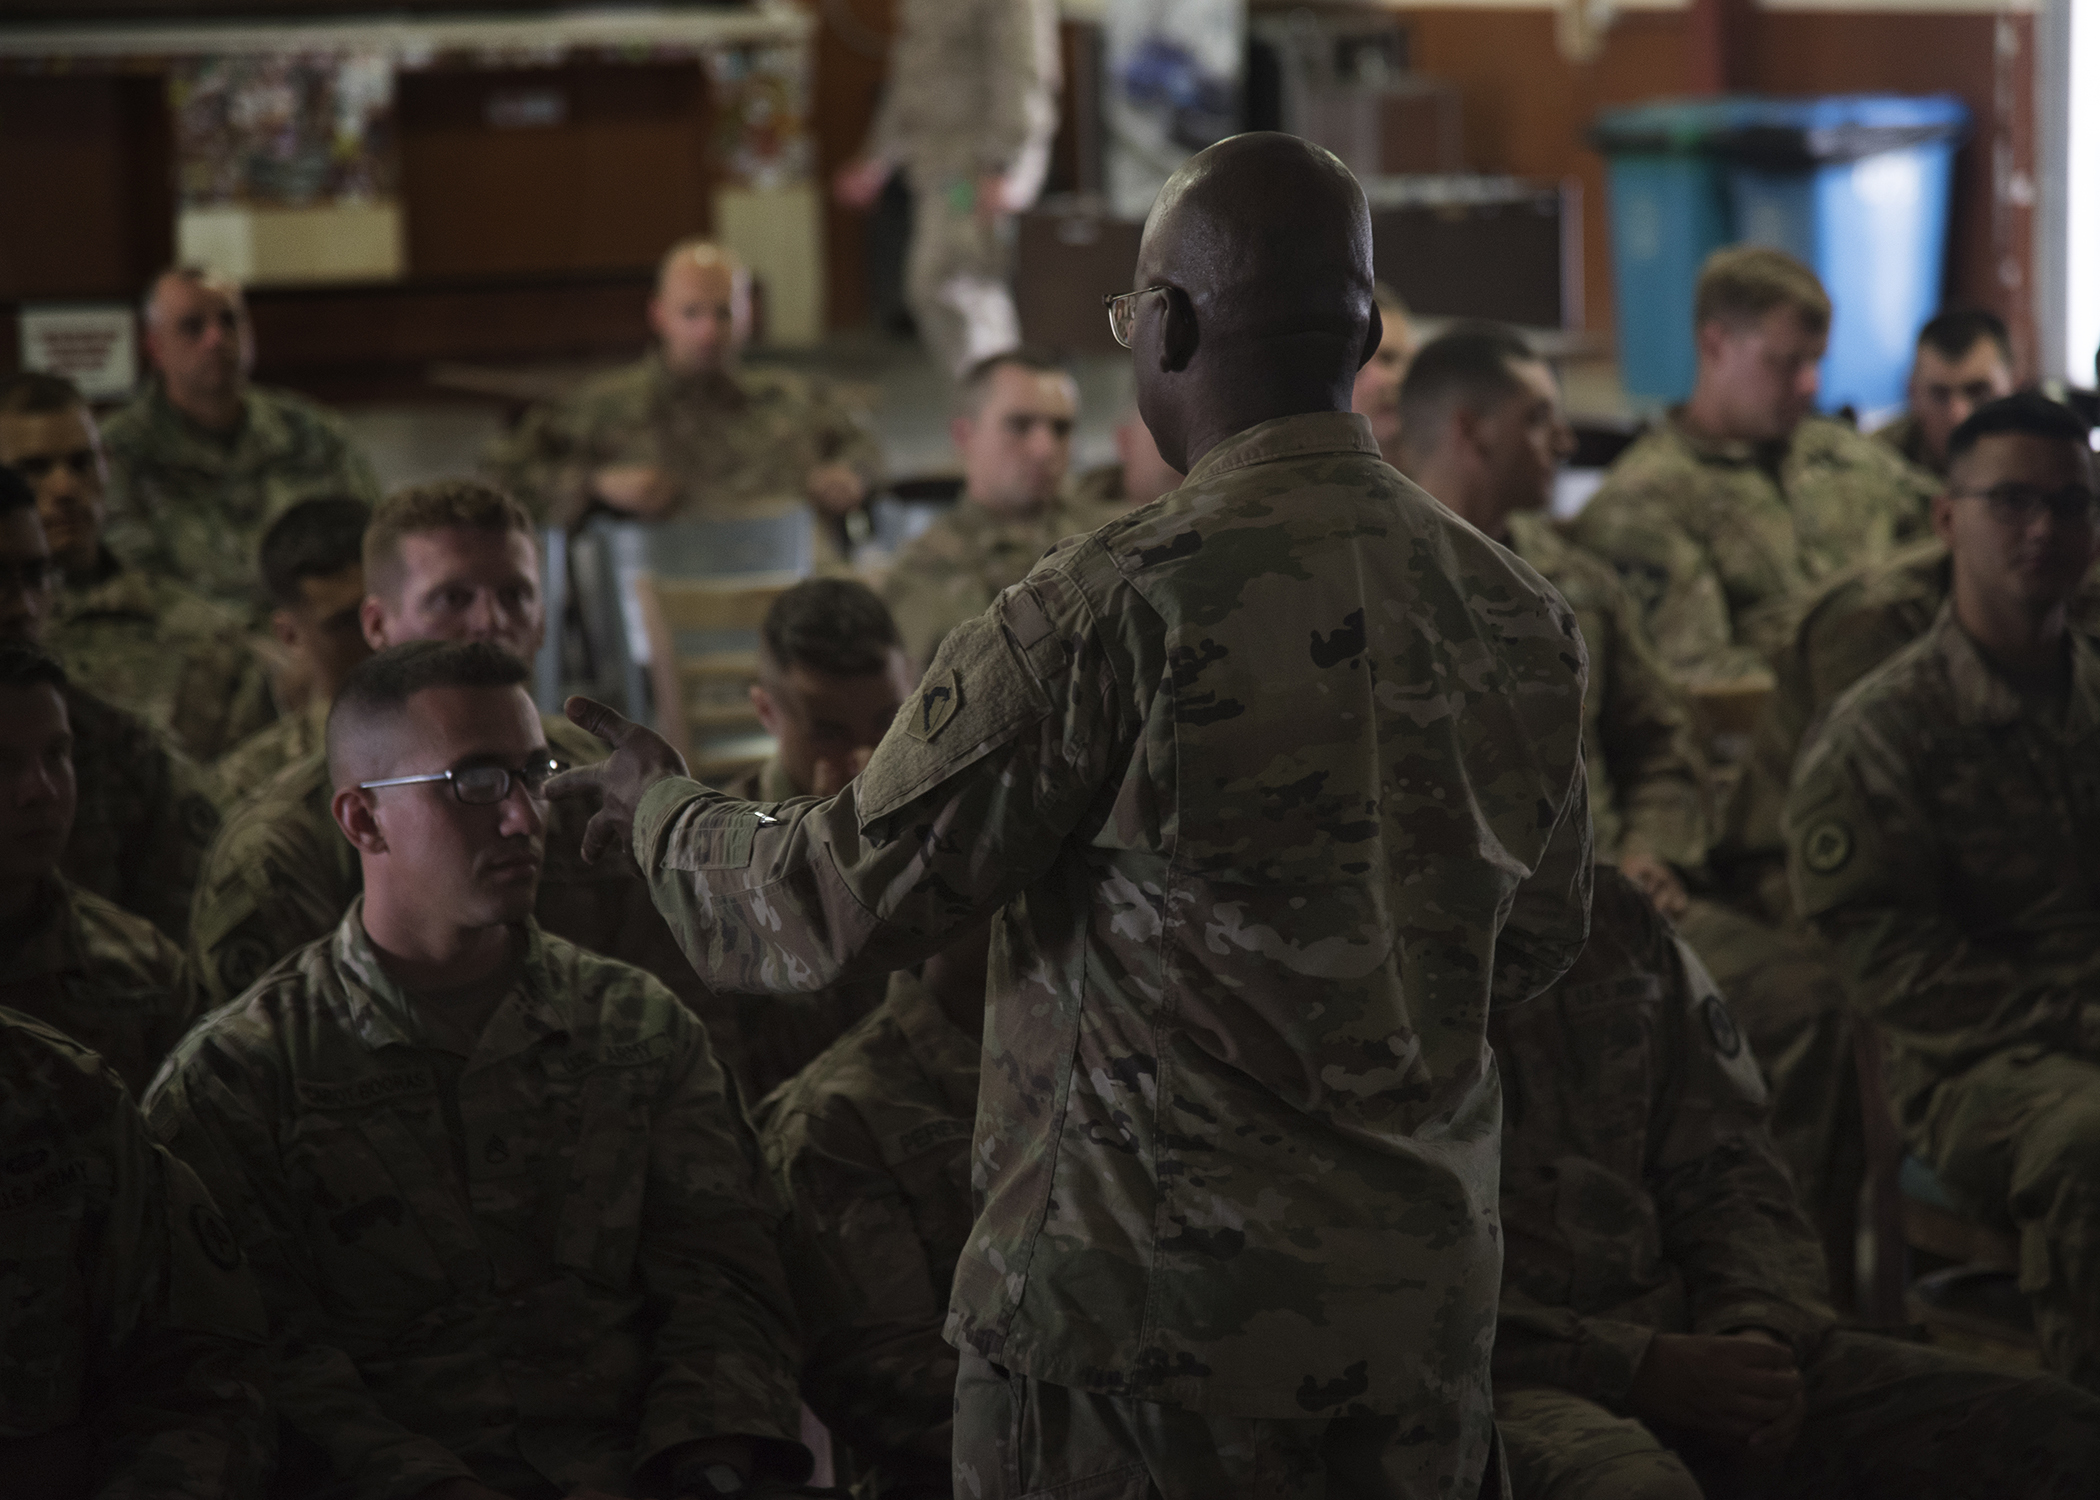 U.S. Army Col. Paul Minor, chaplain with the Massachusetts National Guard, speaks to U.S. Soldiers from the Massachusetts National Guard deployed to Combined Joint Task Force-Horn of Africa (CJTF-HOA), during a battlefield circulation at Camp Lemonnier, Djibouti, April 25, 2019. Minor met with more than 80 Massachusetts National Guard Soldiers assigned to, Charlie Company, 1st Battalion, 181st Infantry Regiment, mobilized to support Task Force Warrior, prior to visiting Kenya, which is Massachusetts' assigned country under the Department of Defense National Guard State Partnership Program. (U.S. Air Force Photo by Senior Airman Kirsten Brandes)